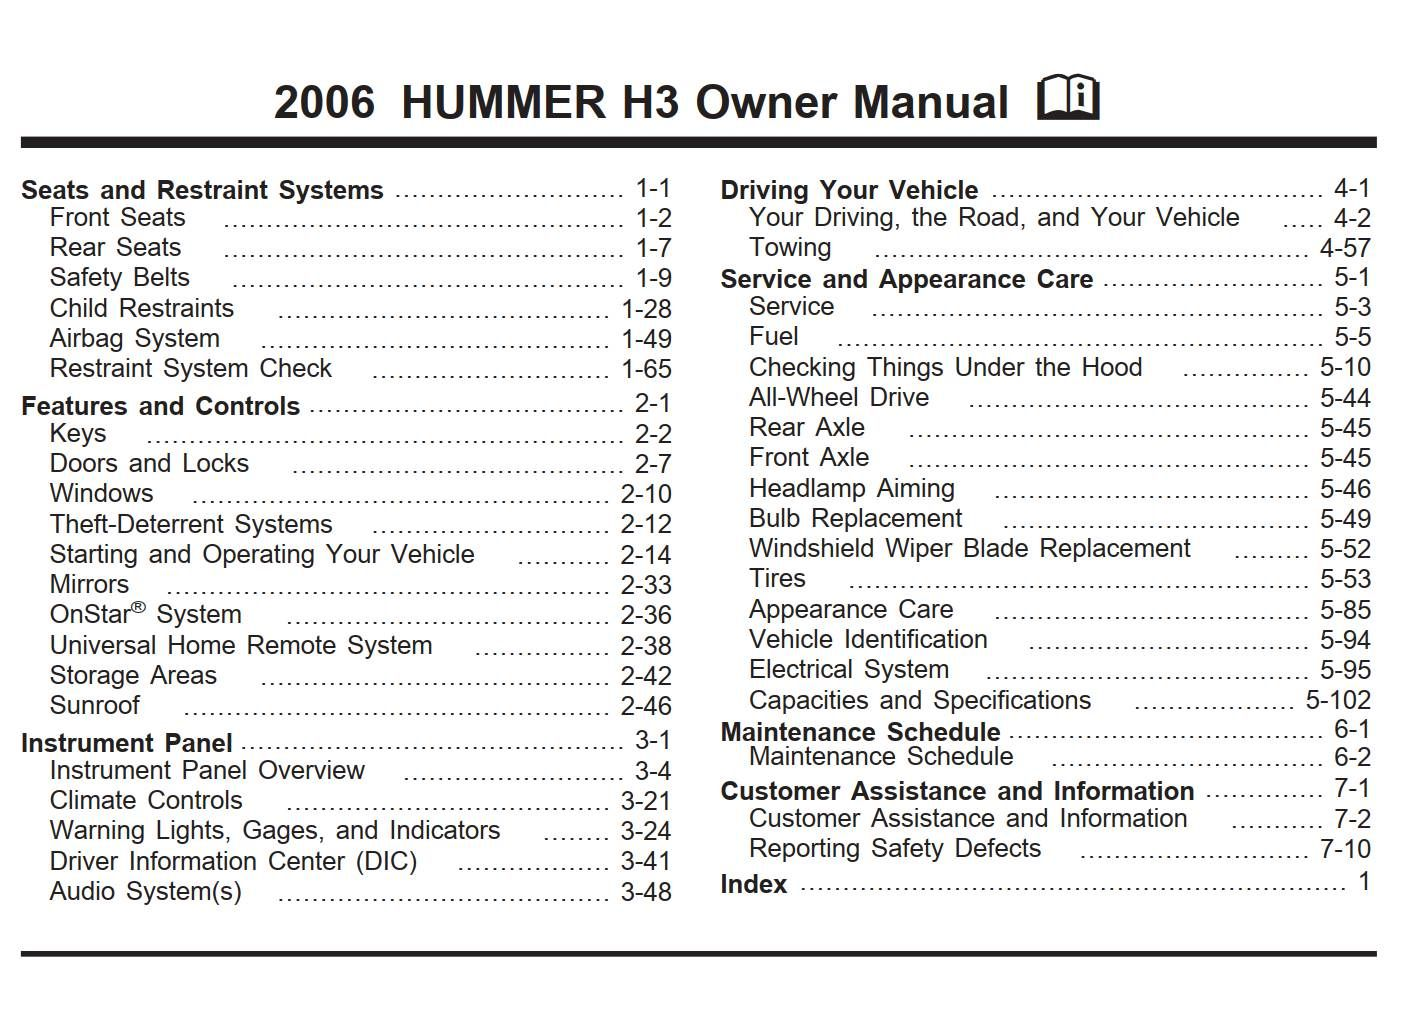 Hummer H3 2006 Owner S Manual Has Been Published On Procarmanuals Com Https Procarmanuals Com Hummer H3 2006 Owne Owners Manuals Chevrolet Aveo Buick Lucerne